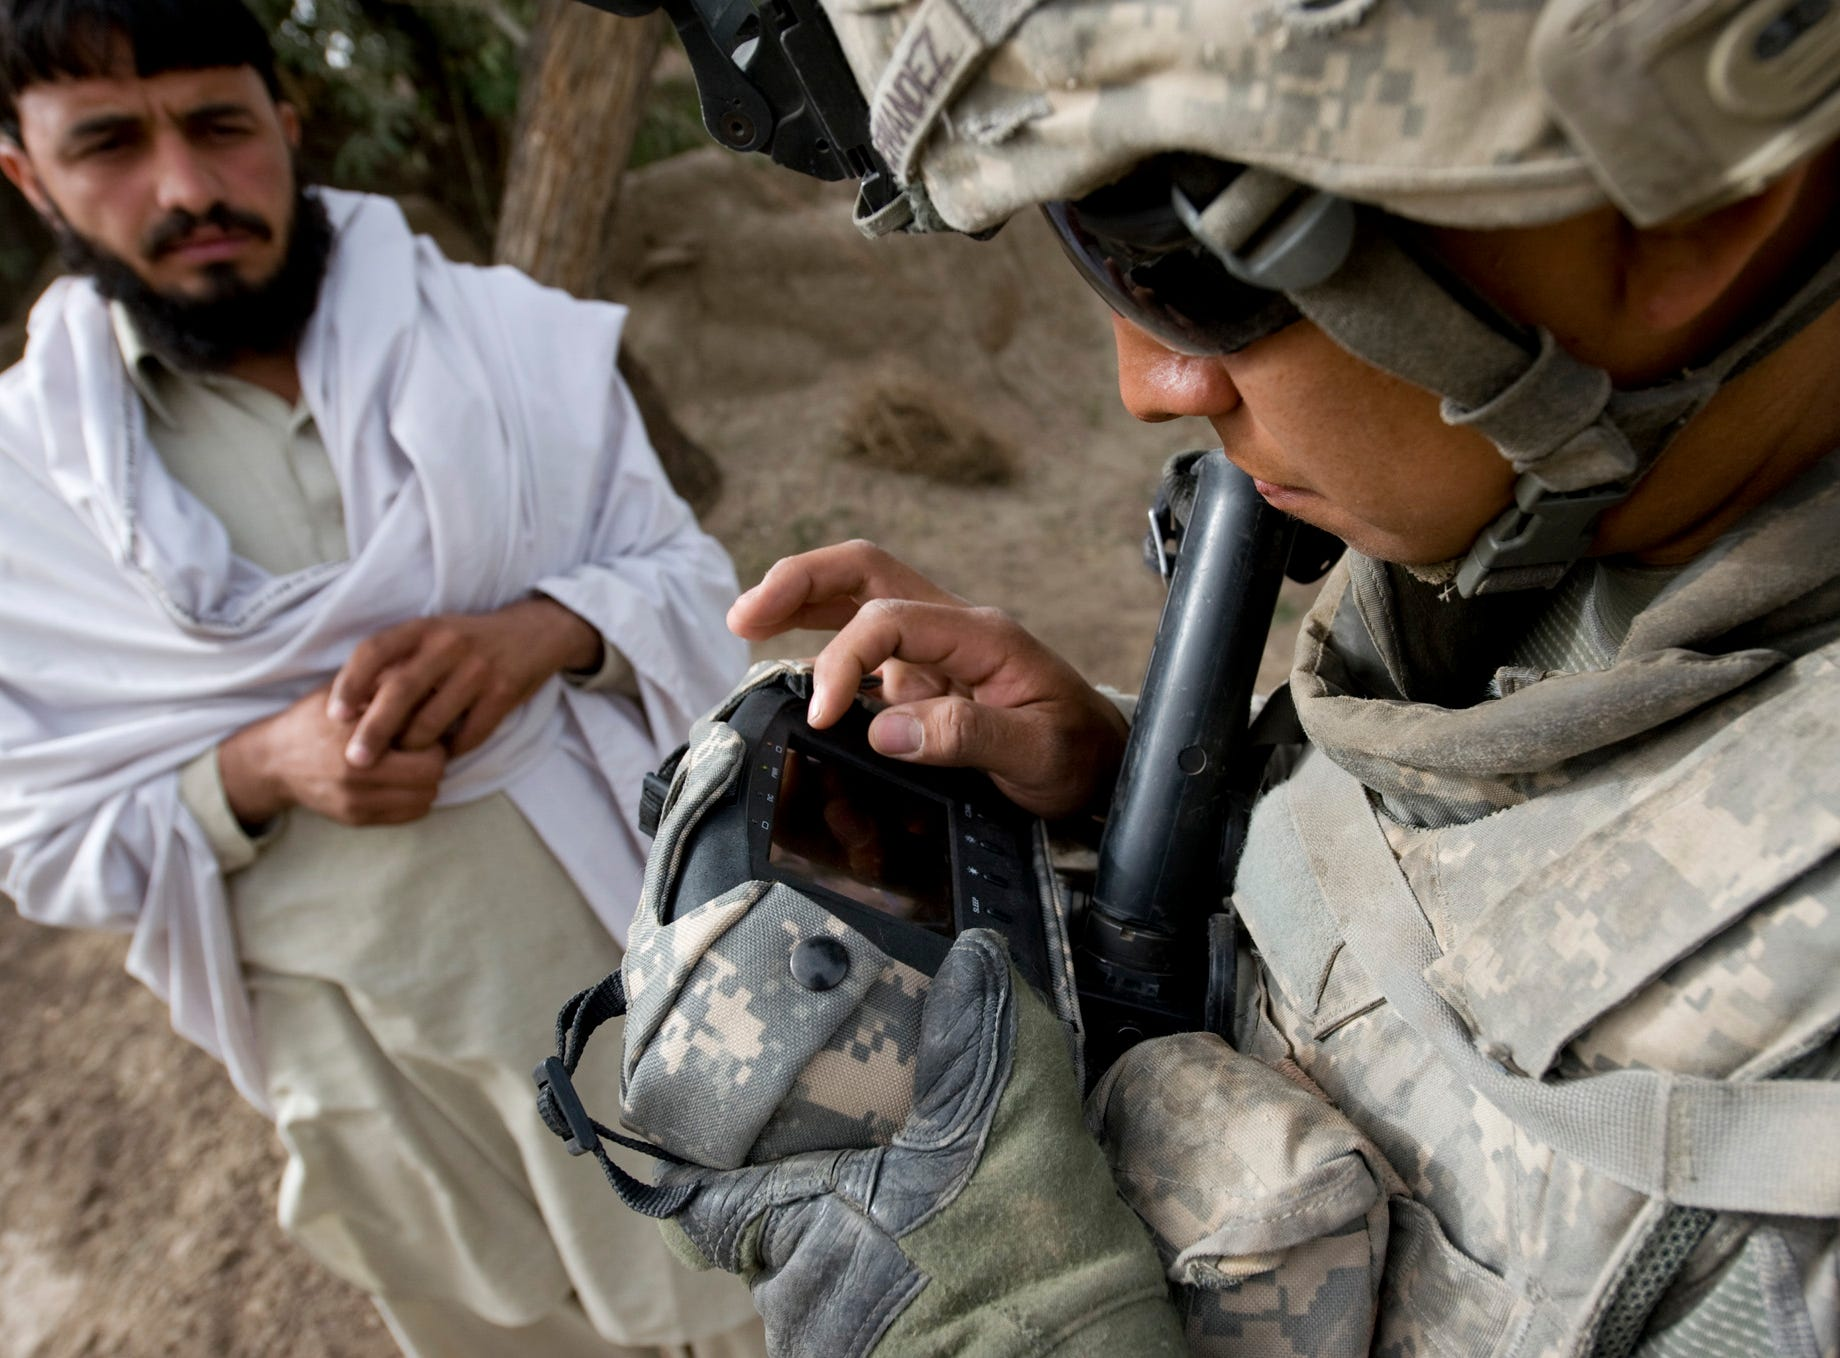 Vermont National Guard Sgt. Dennis Fernandez of Elkhart, Ind., of Delta Company, 3rd Platoon, enters in a Afghan man's name after taking his picture, a retinal scan, and finger prints with a HIIDE (Handheld Interagency Identity Detection Equipment) in a village in Rahman Keyhl in southern Paktia Province on Wednesday, September 15, 2010. The information is then stored in a national database to used to find known insurgents or, in a recent case, match fingerprints to those found on a IED.